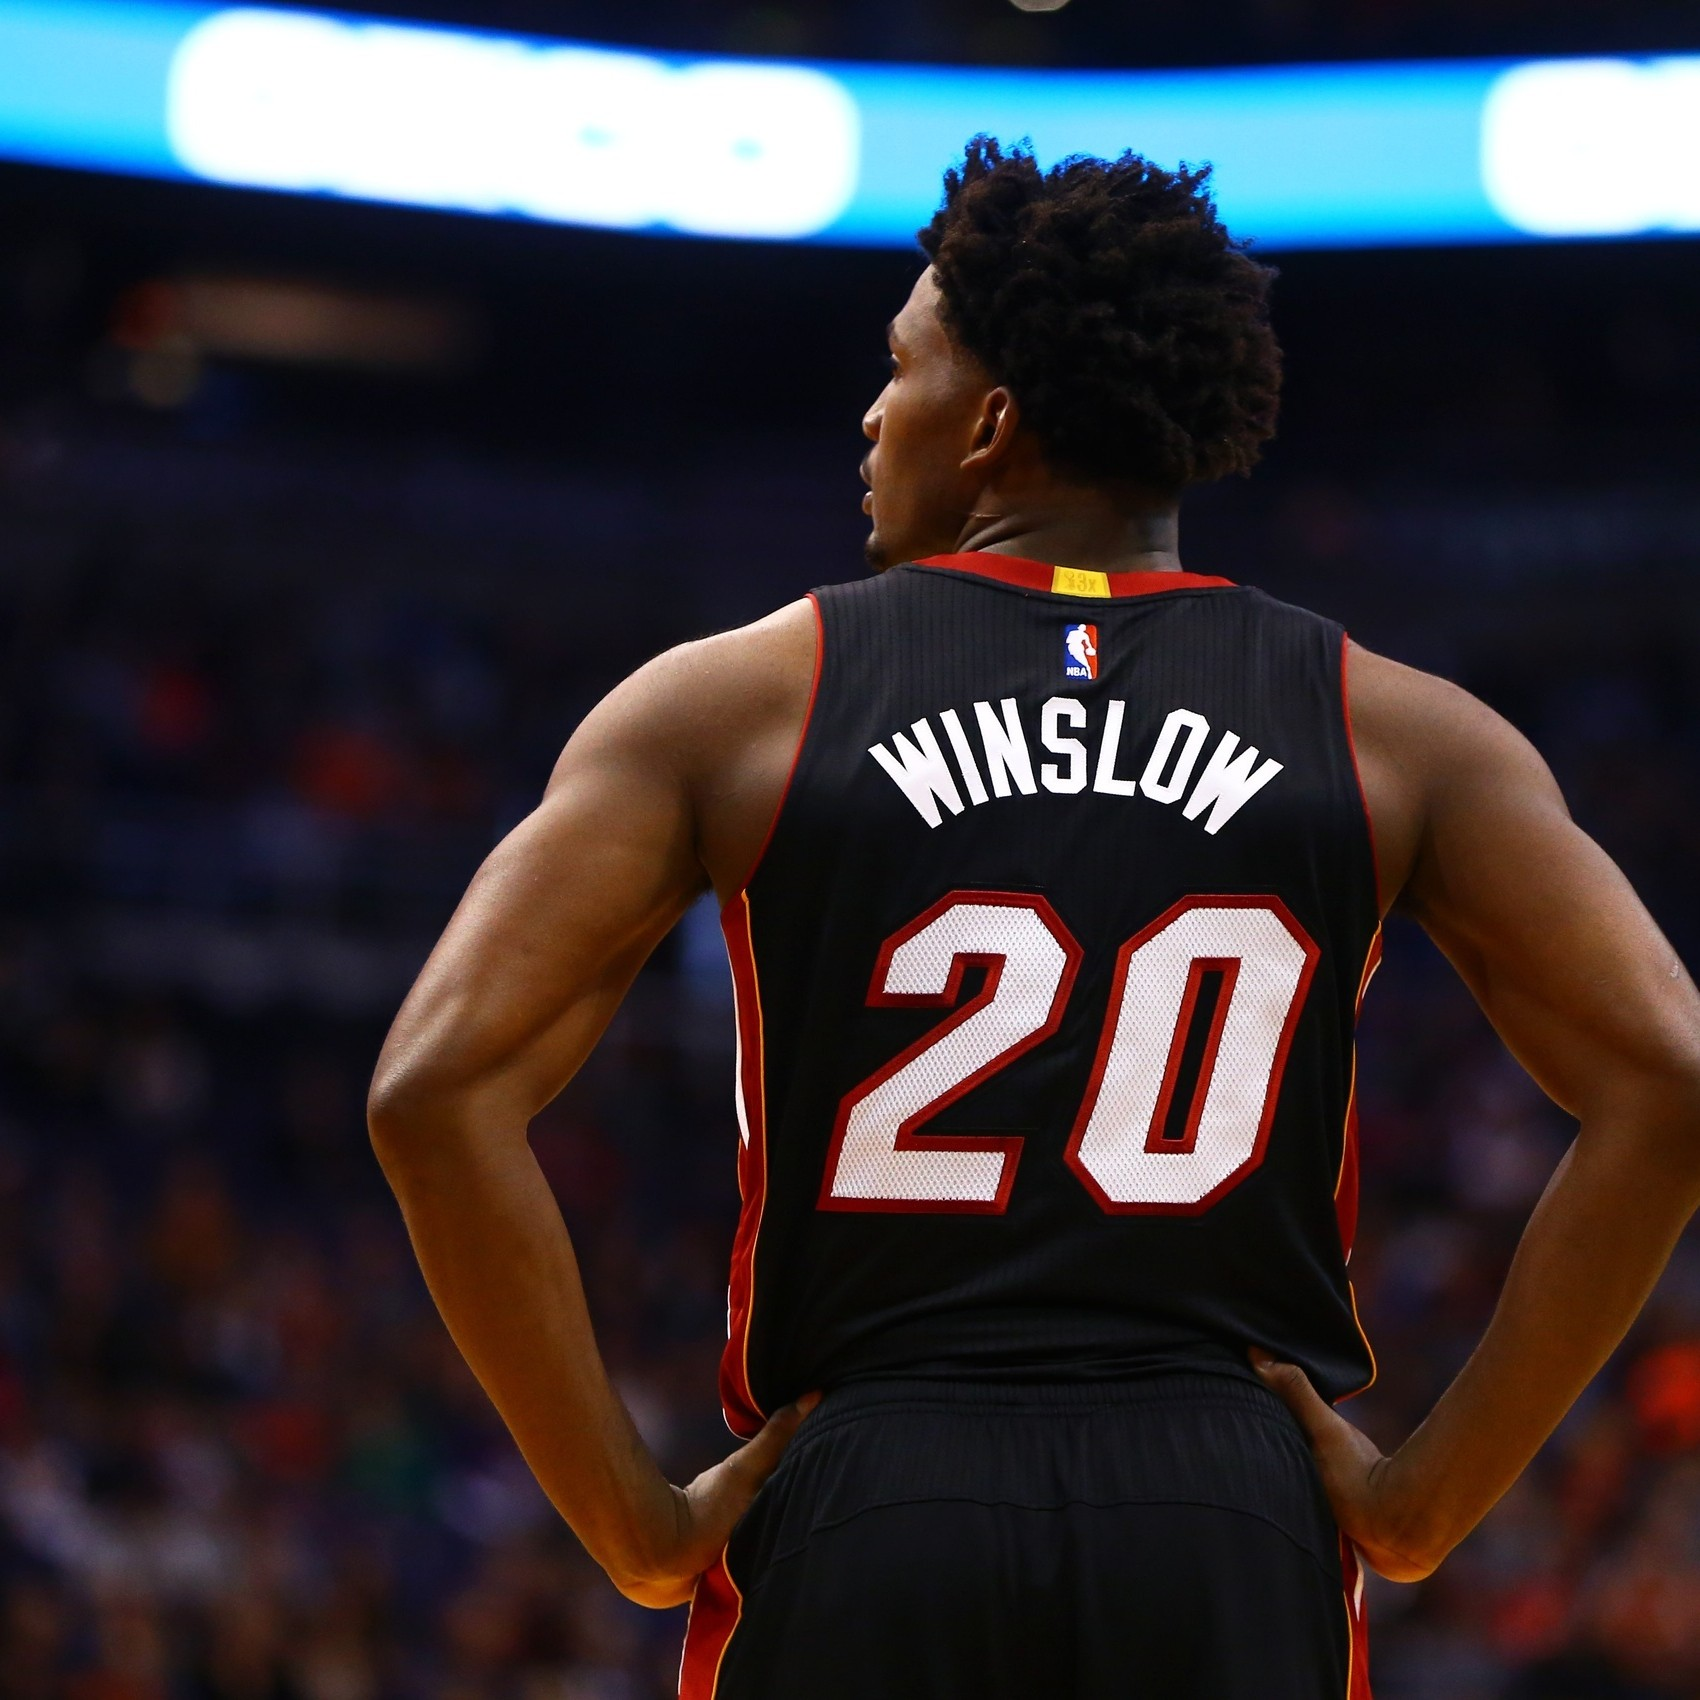 Justise-winslow-is-ahead-of-the-curve-1468616291.jpg?crop=0